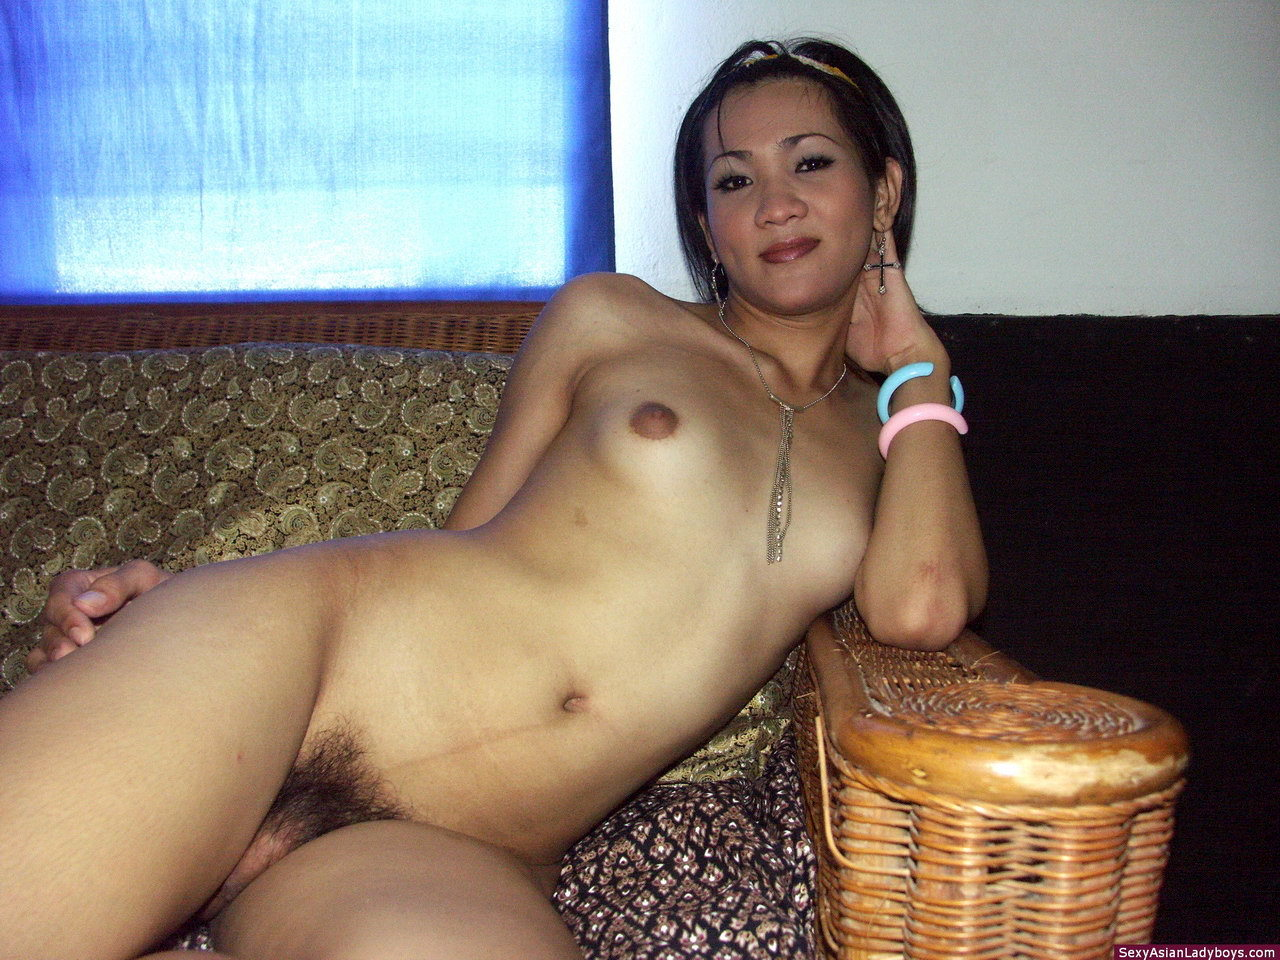 Thai T-Girl Proudly Posing Nude In Her House